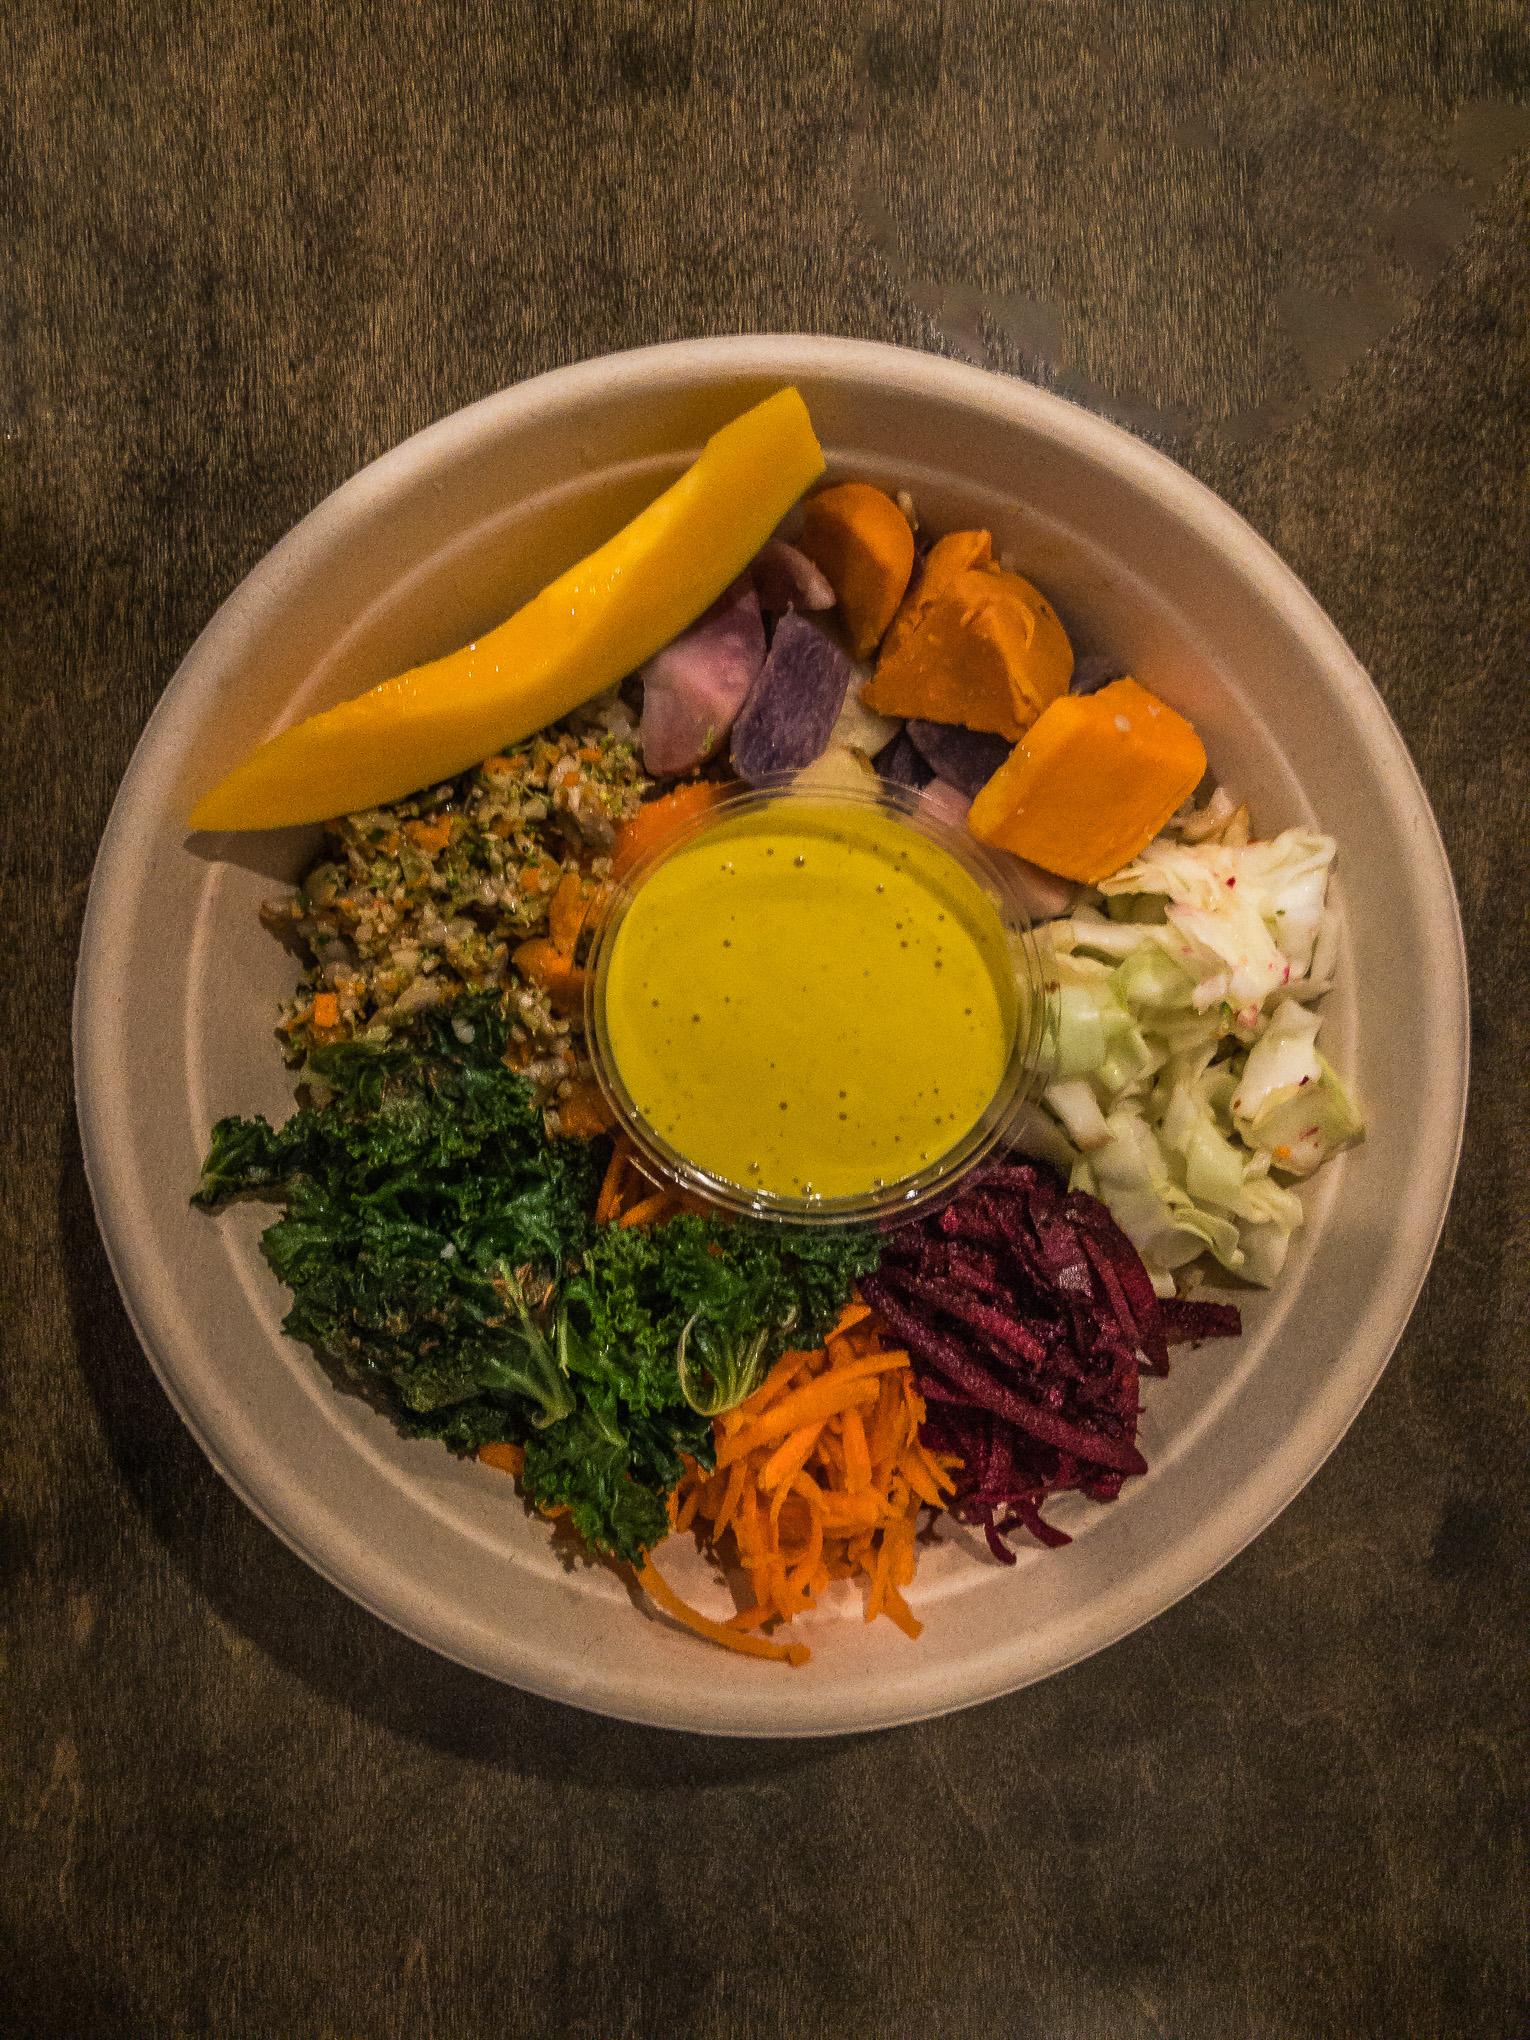 Overhead shot of a bowl filled with veggies